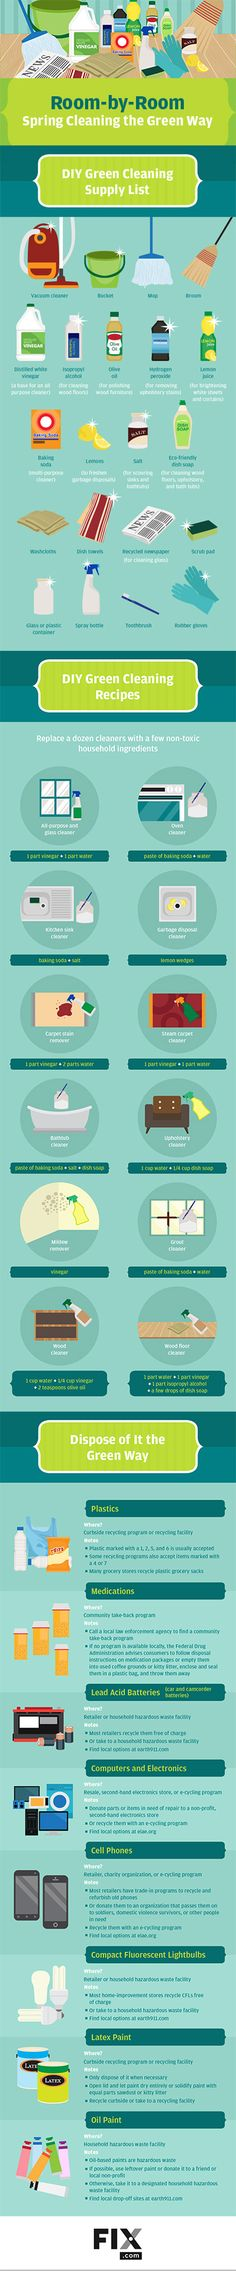 Learn how to make every room in your house sparkle the green way.